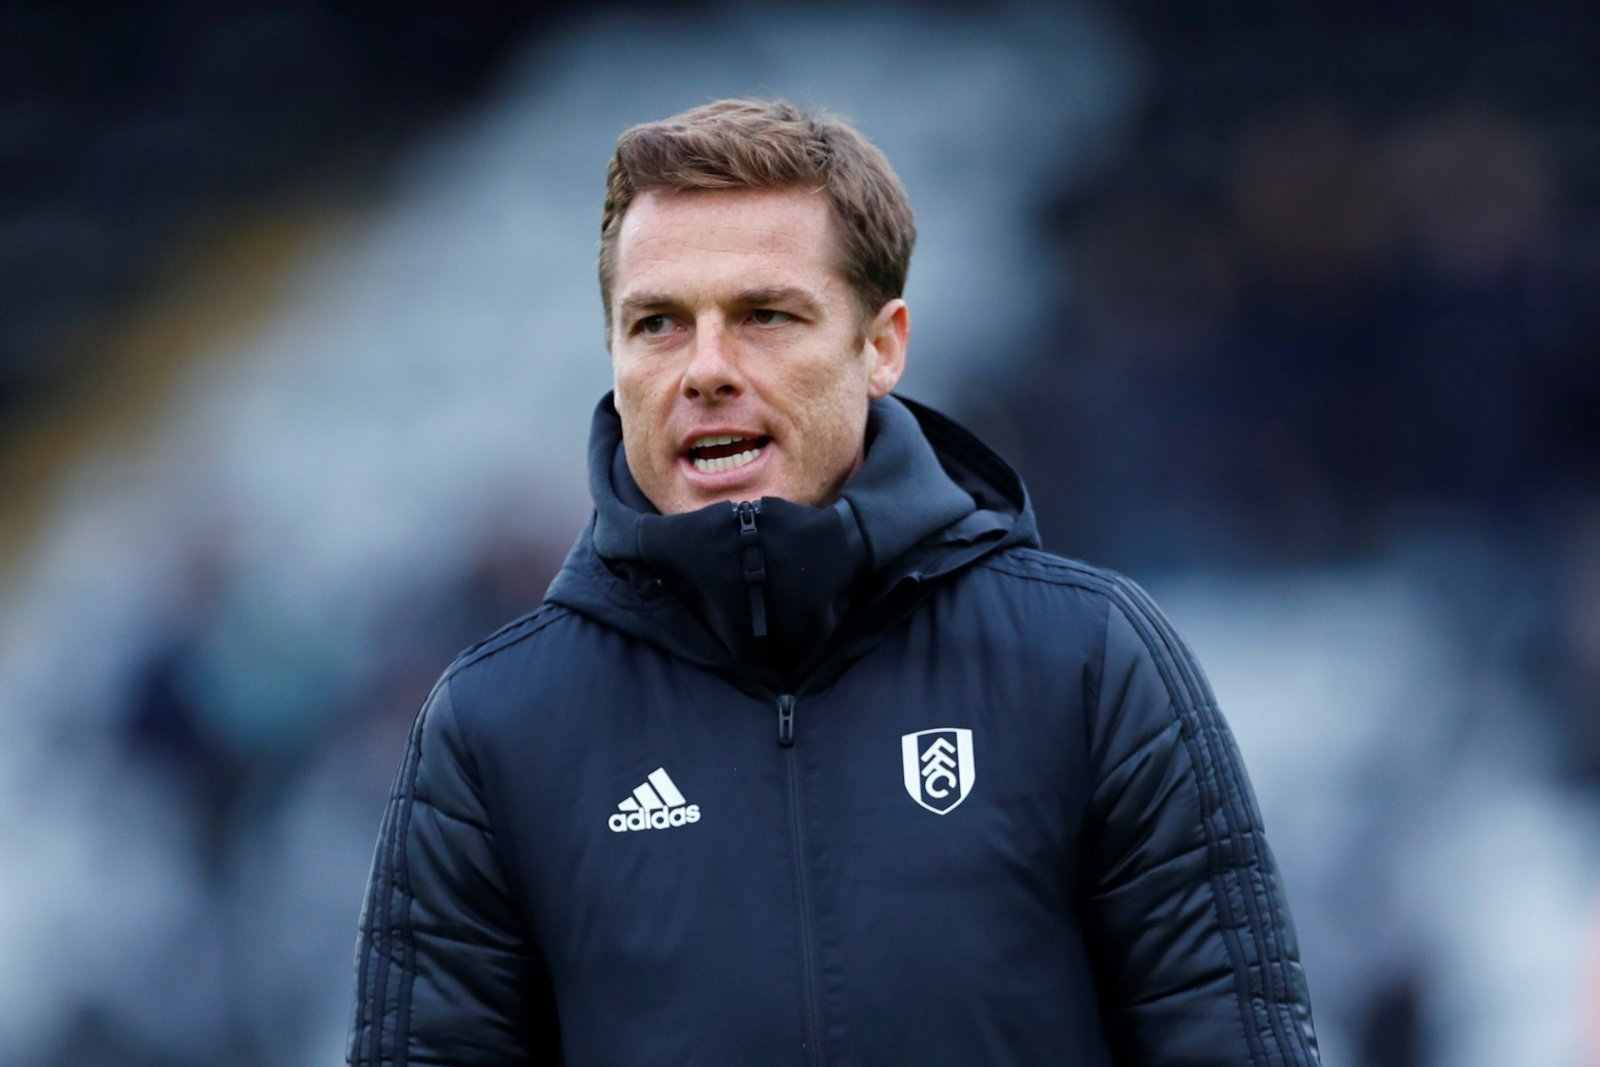 Sorting out the defence would make Scott Parker a Fulham hero